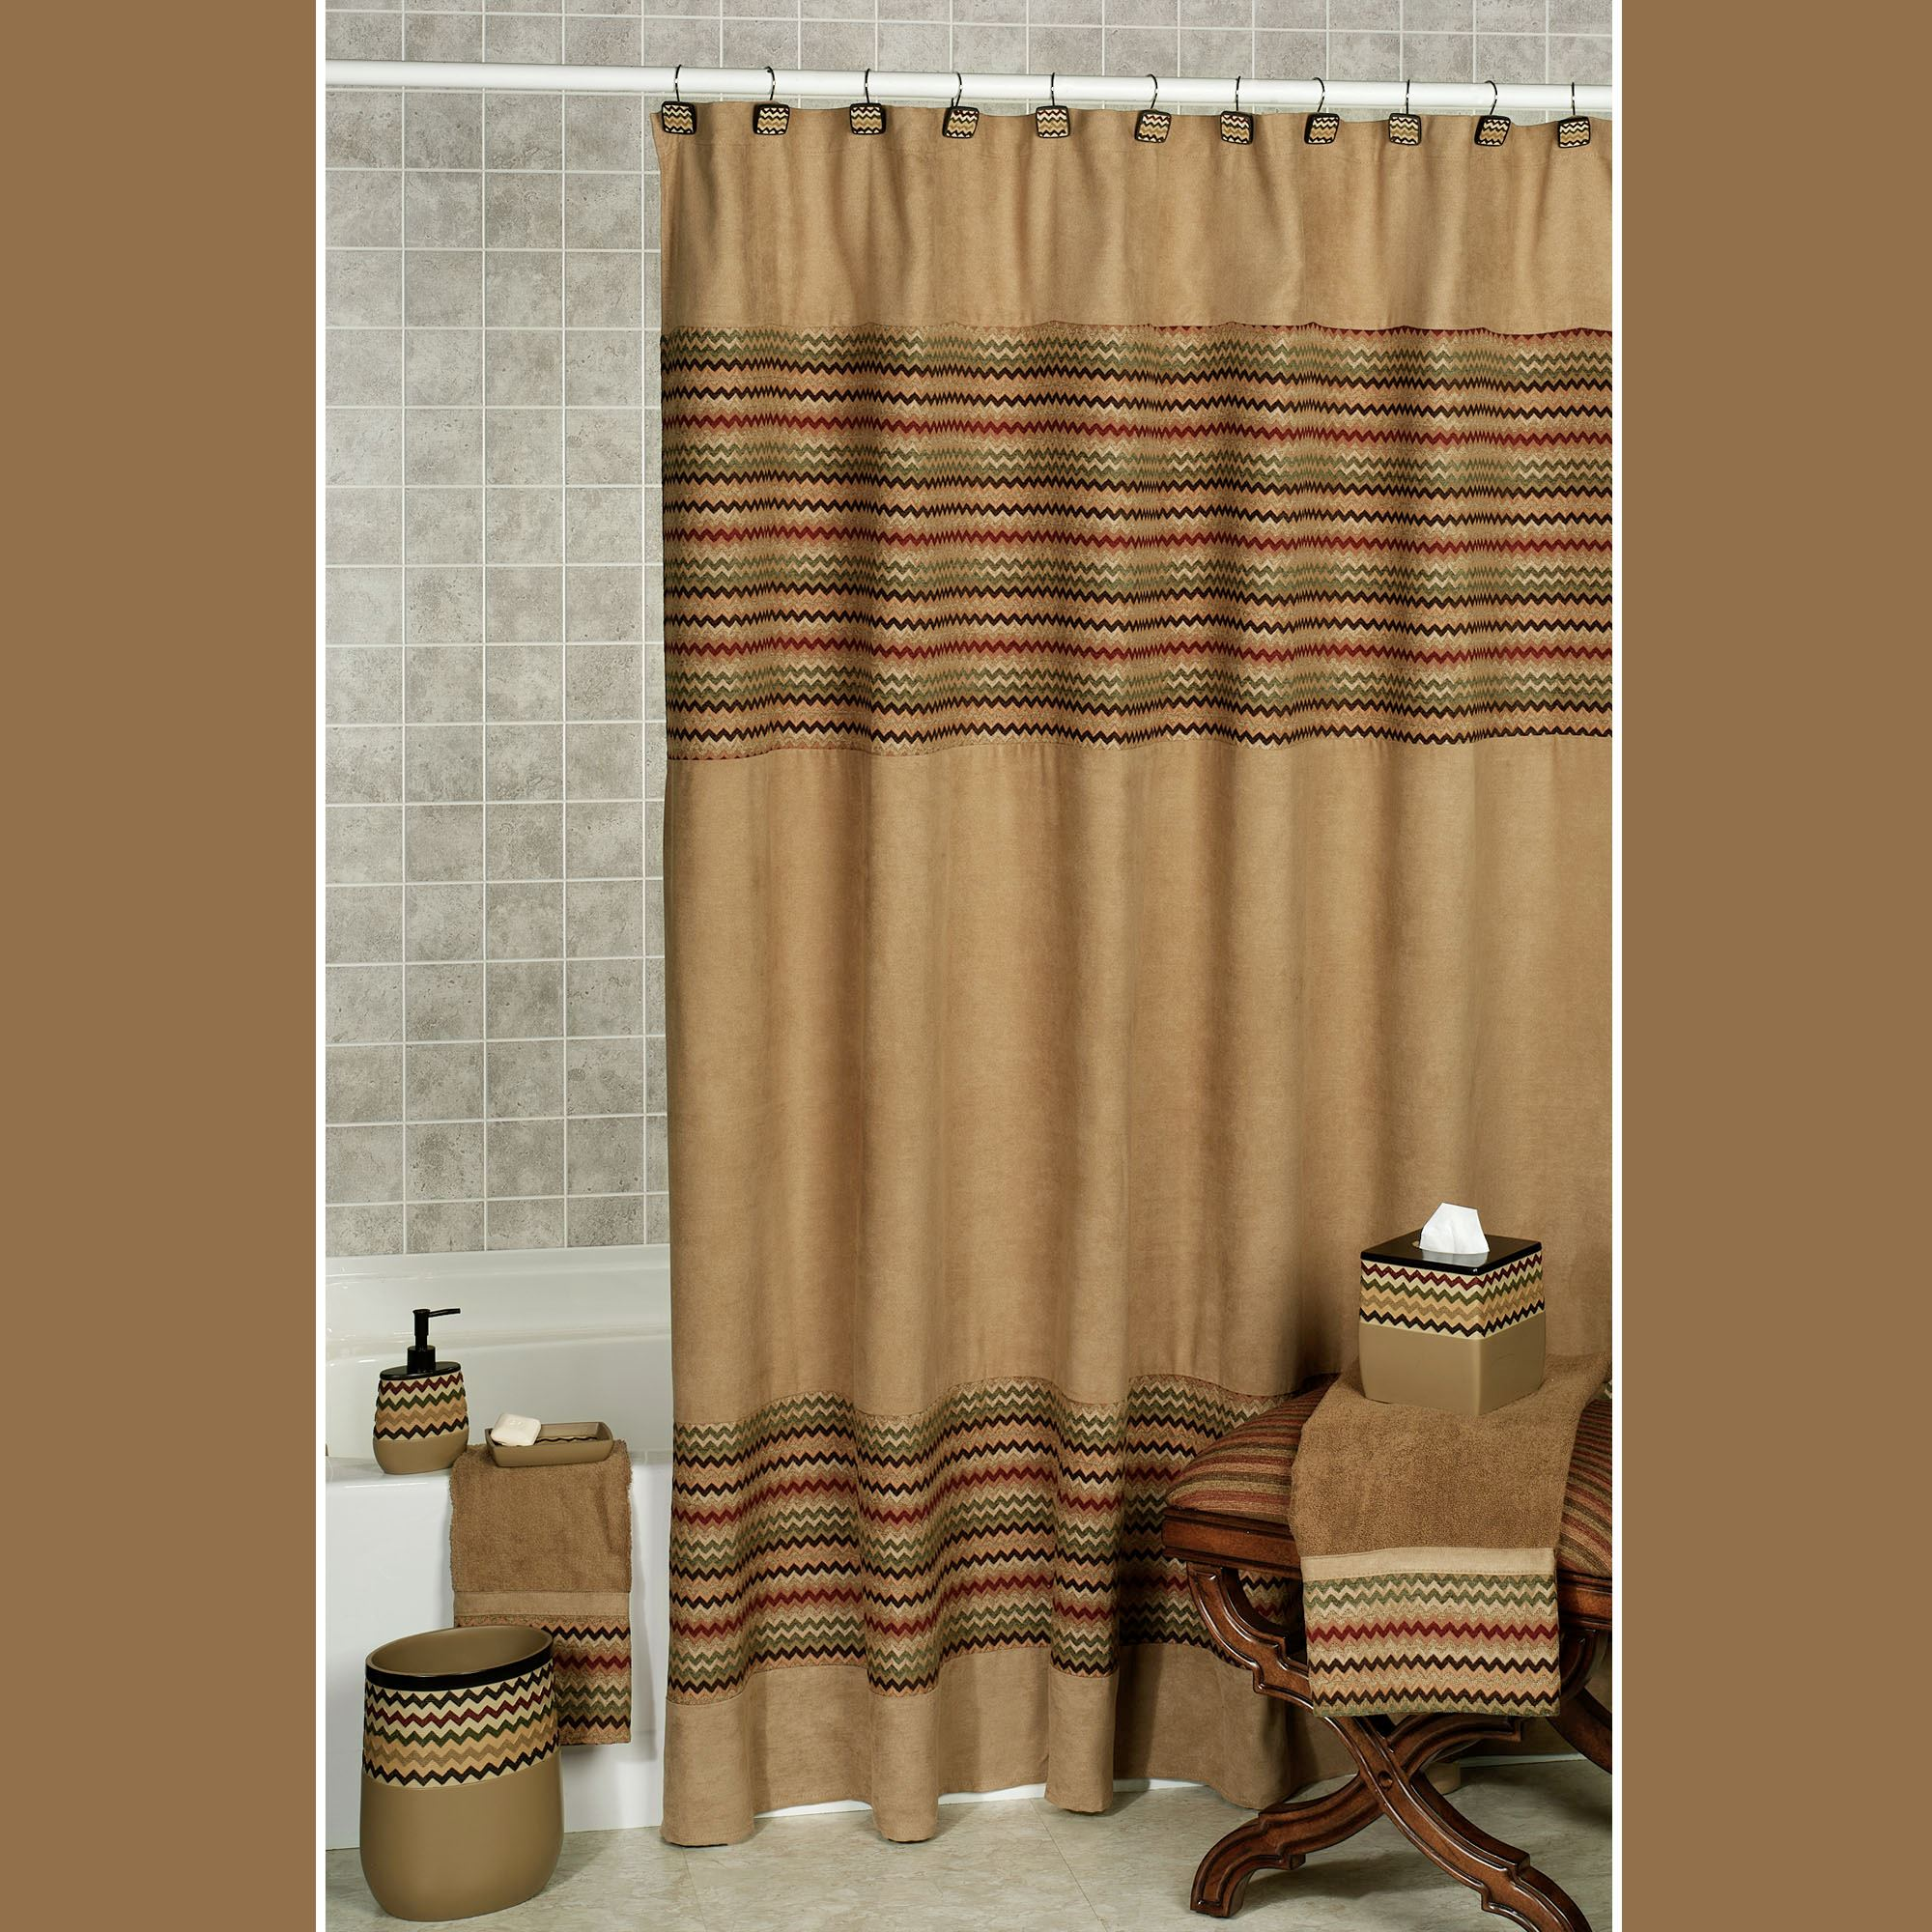 Waves Shower Curtain Tan Brown 70 X 72